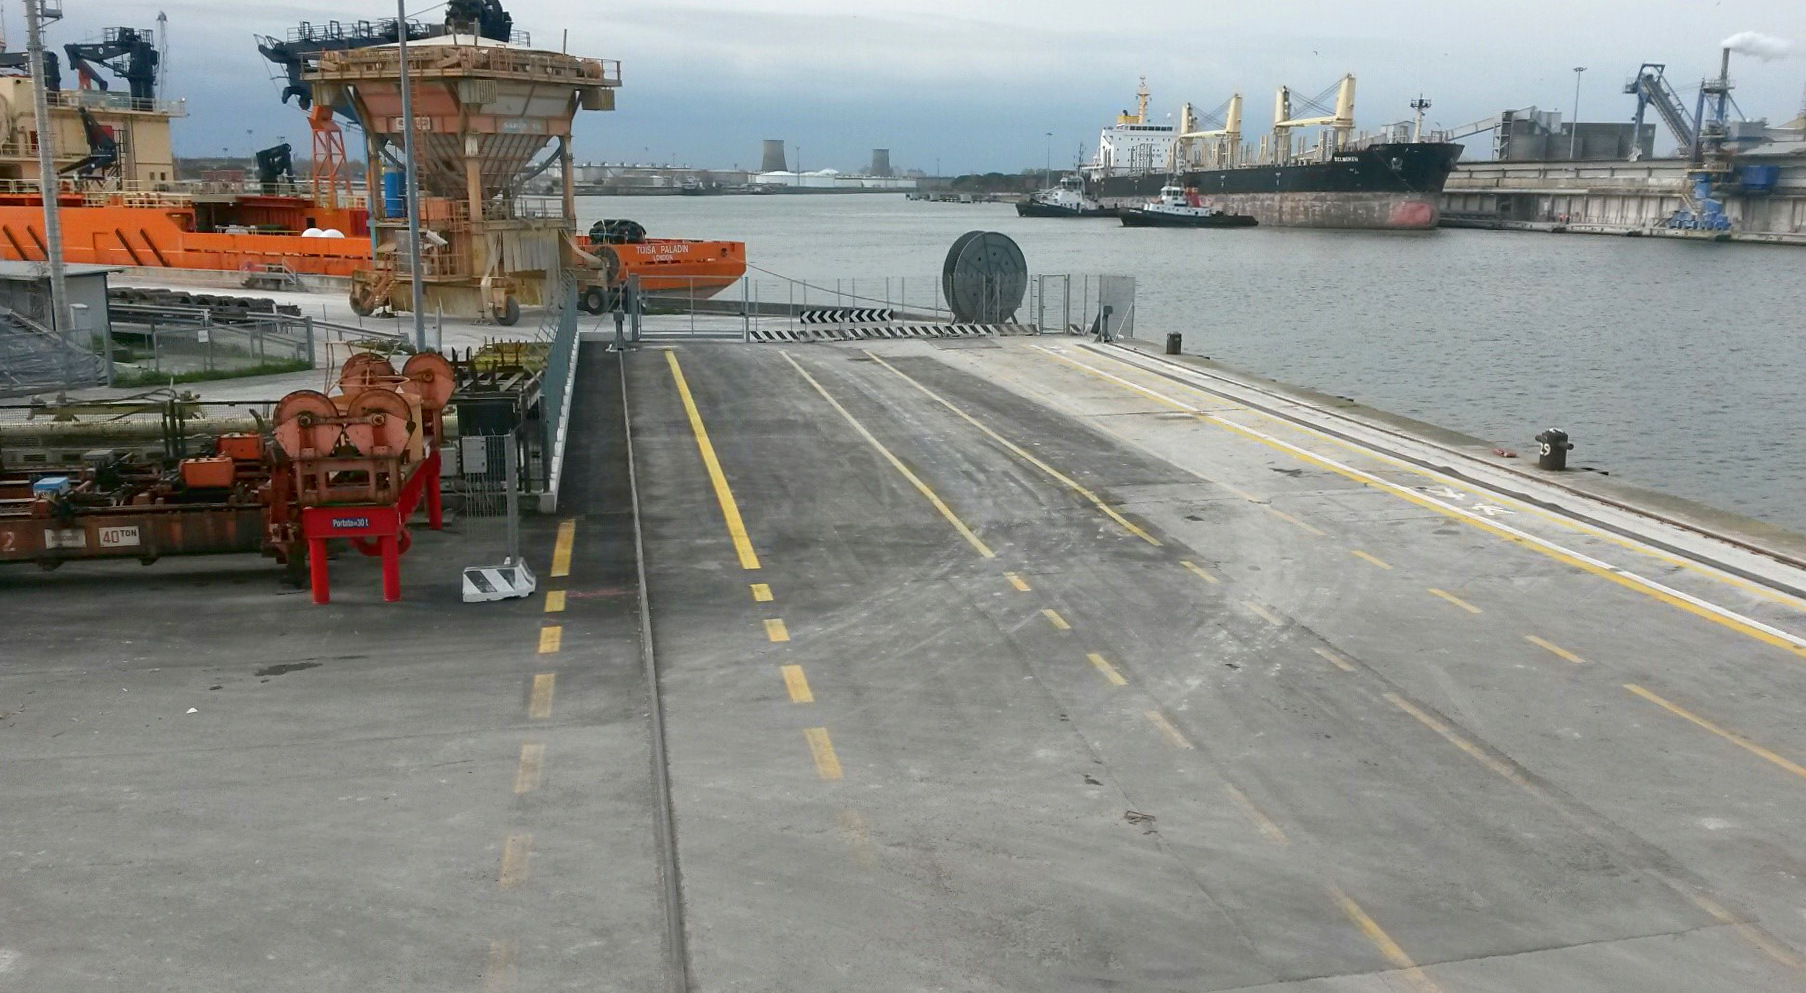 TCR stretches its potential: operational quay length